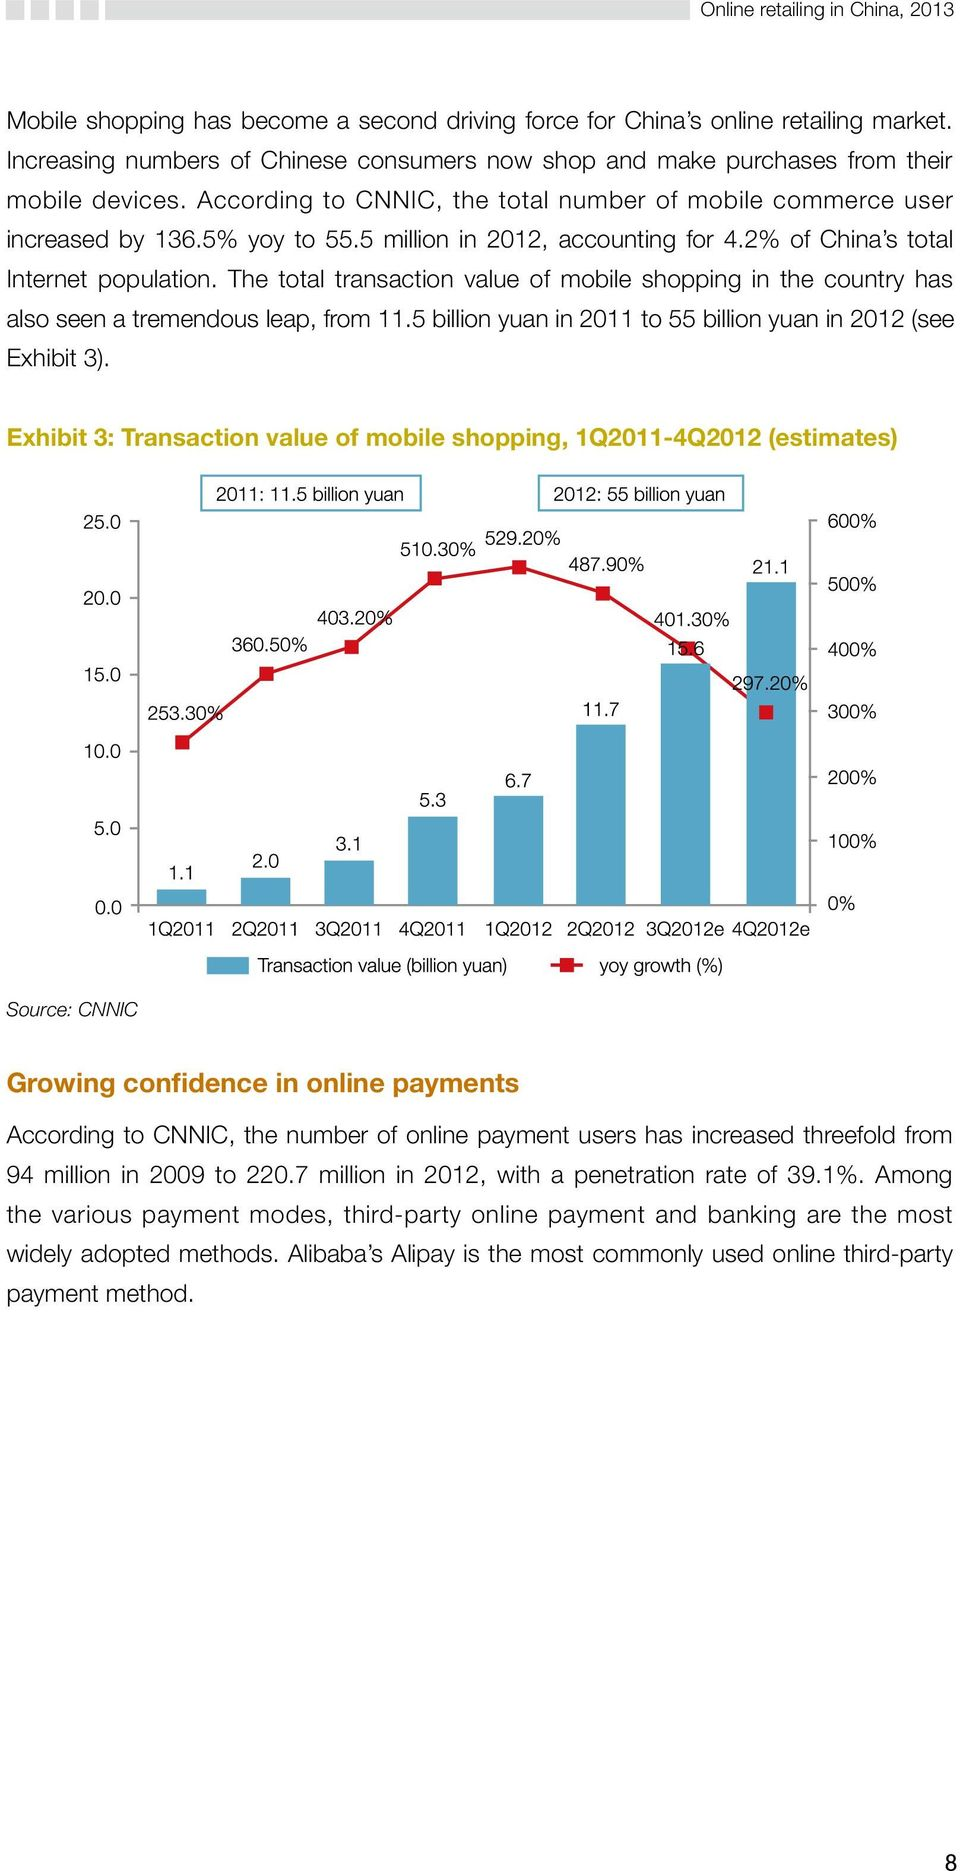 5 million in 2012, accounting for 4.2% of China s total also seen a tremendous leap, from 11.5 billion yuan in 2011 to 55 billion yuan in 2012 (see Exhibit 3).